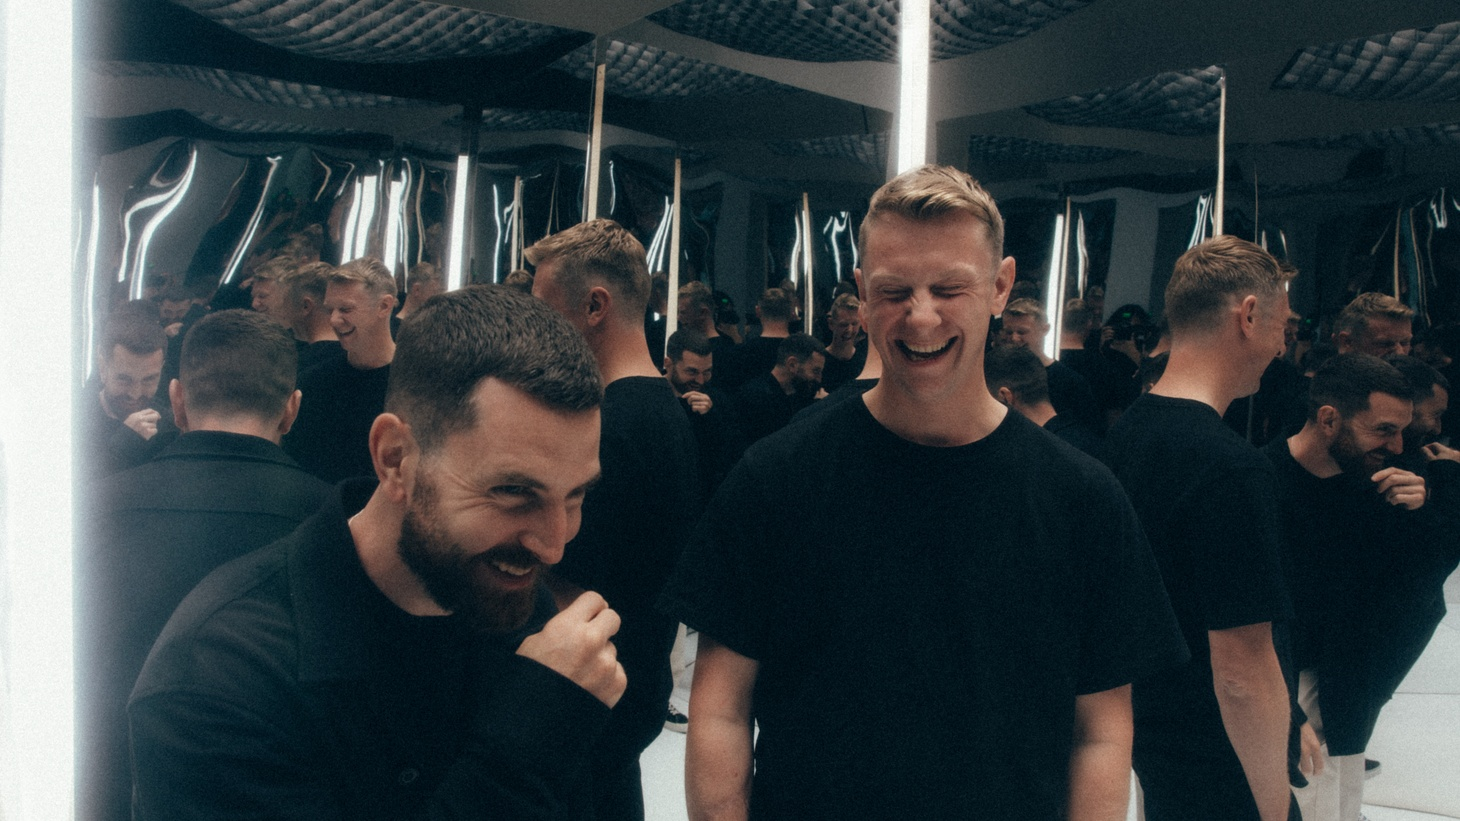 """London-based duo Bicep know how to flex their music muscle. The follow-up to their 2017 debut album, """"Isles,"""" is a sonic treat with """"Apricots"""" as a downtempo fleshy, luscious center."""